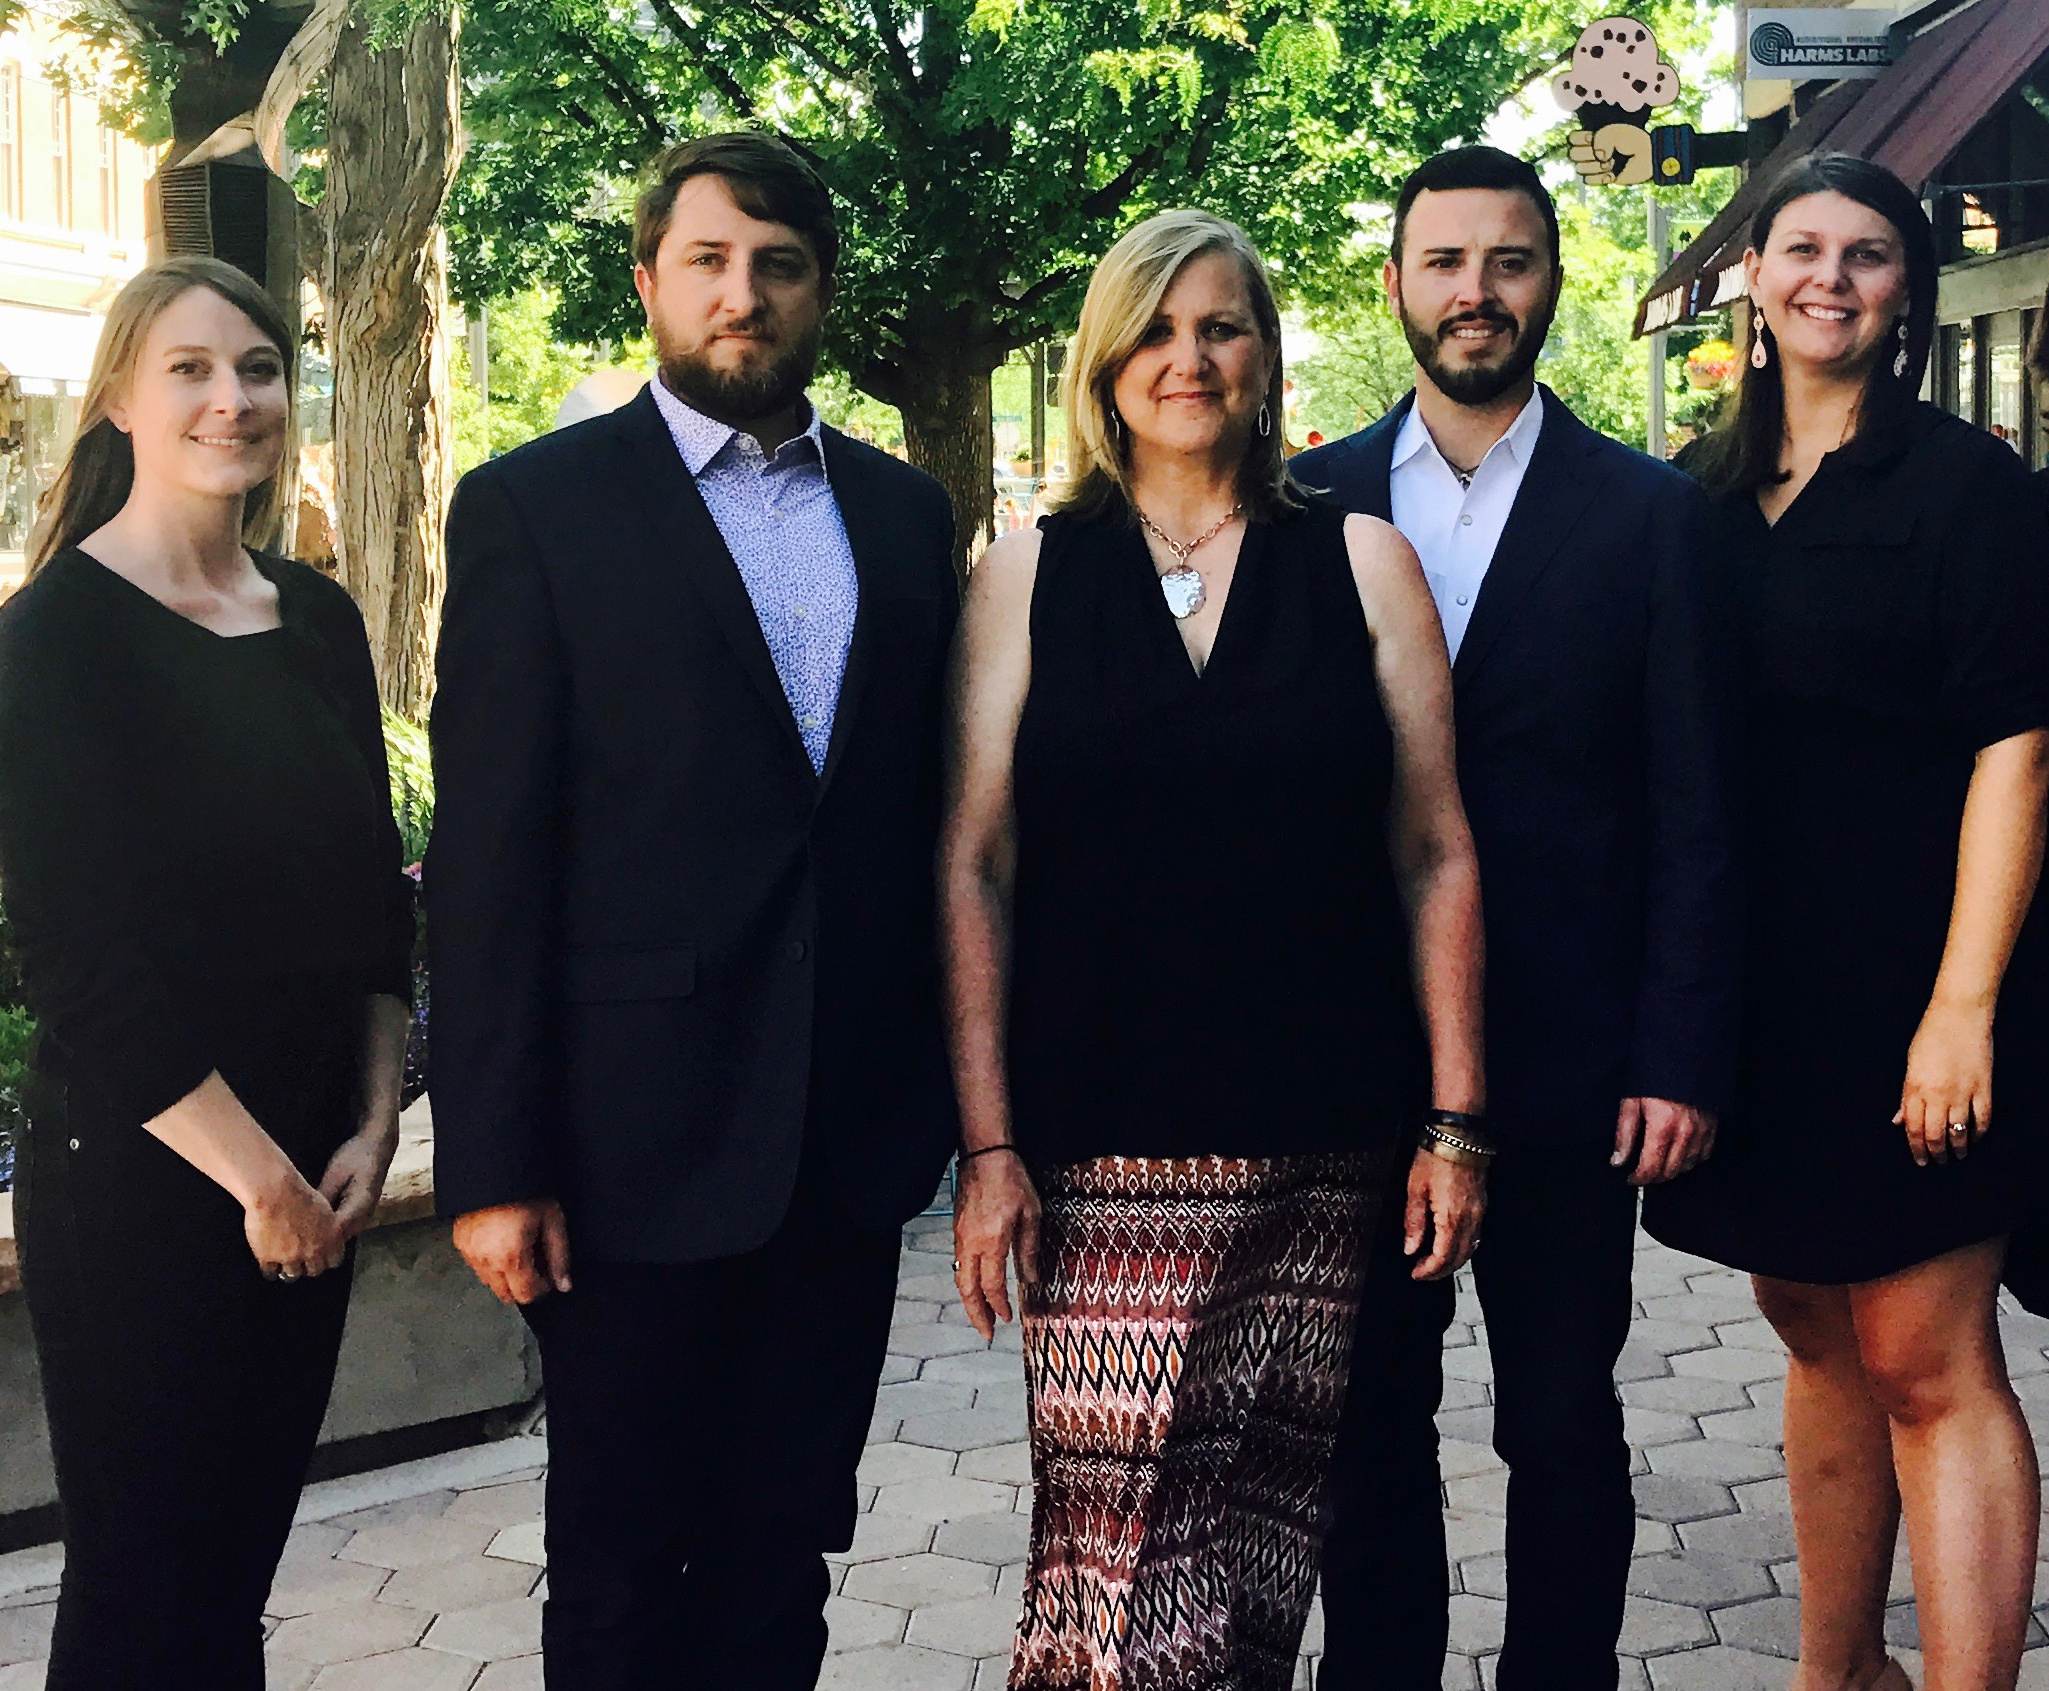 Meet the Team: Allison Callahan - Mary Ann's assistant, Colin Glover - The Group Realtor, Mary Ann Michels - The Group Realtor, James W. Mitchell - The Group Realtor, Jessie Ferguson - James and Coliins' assistant